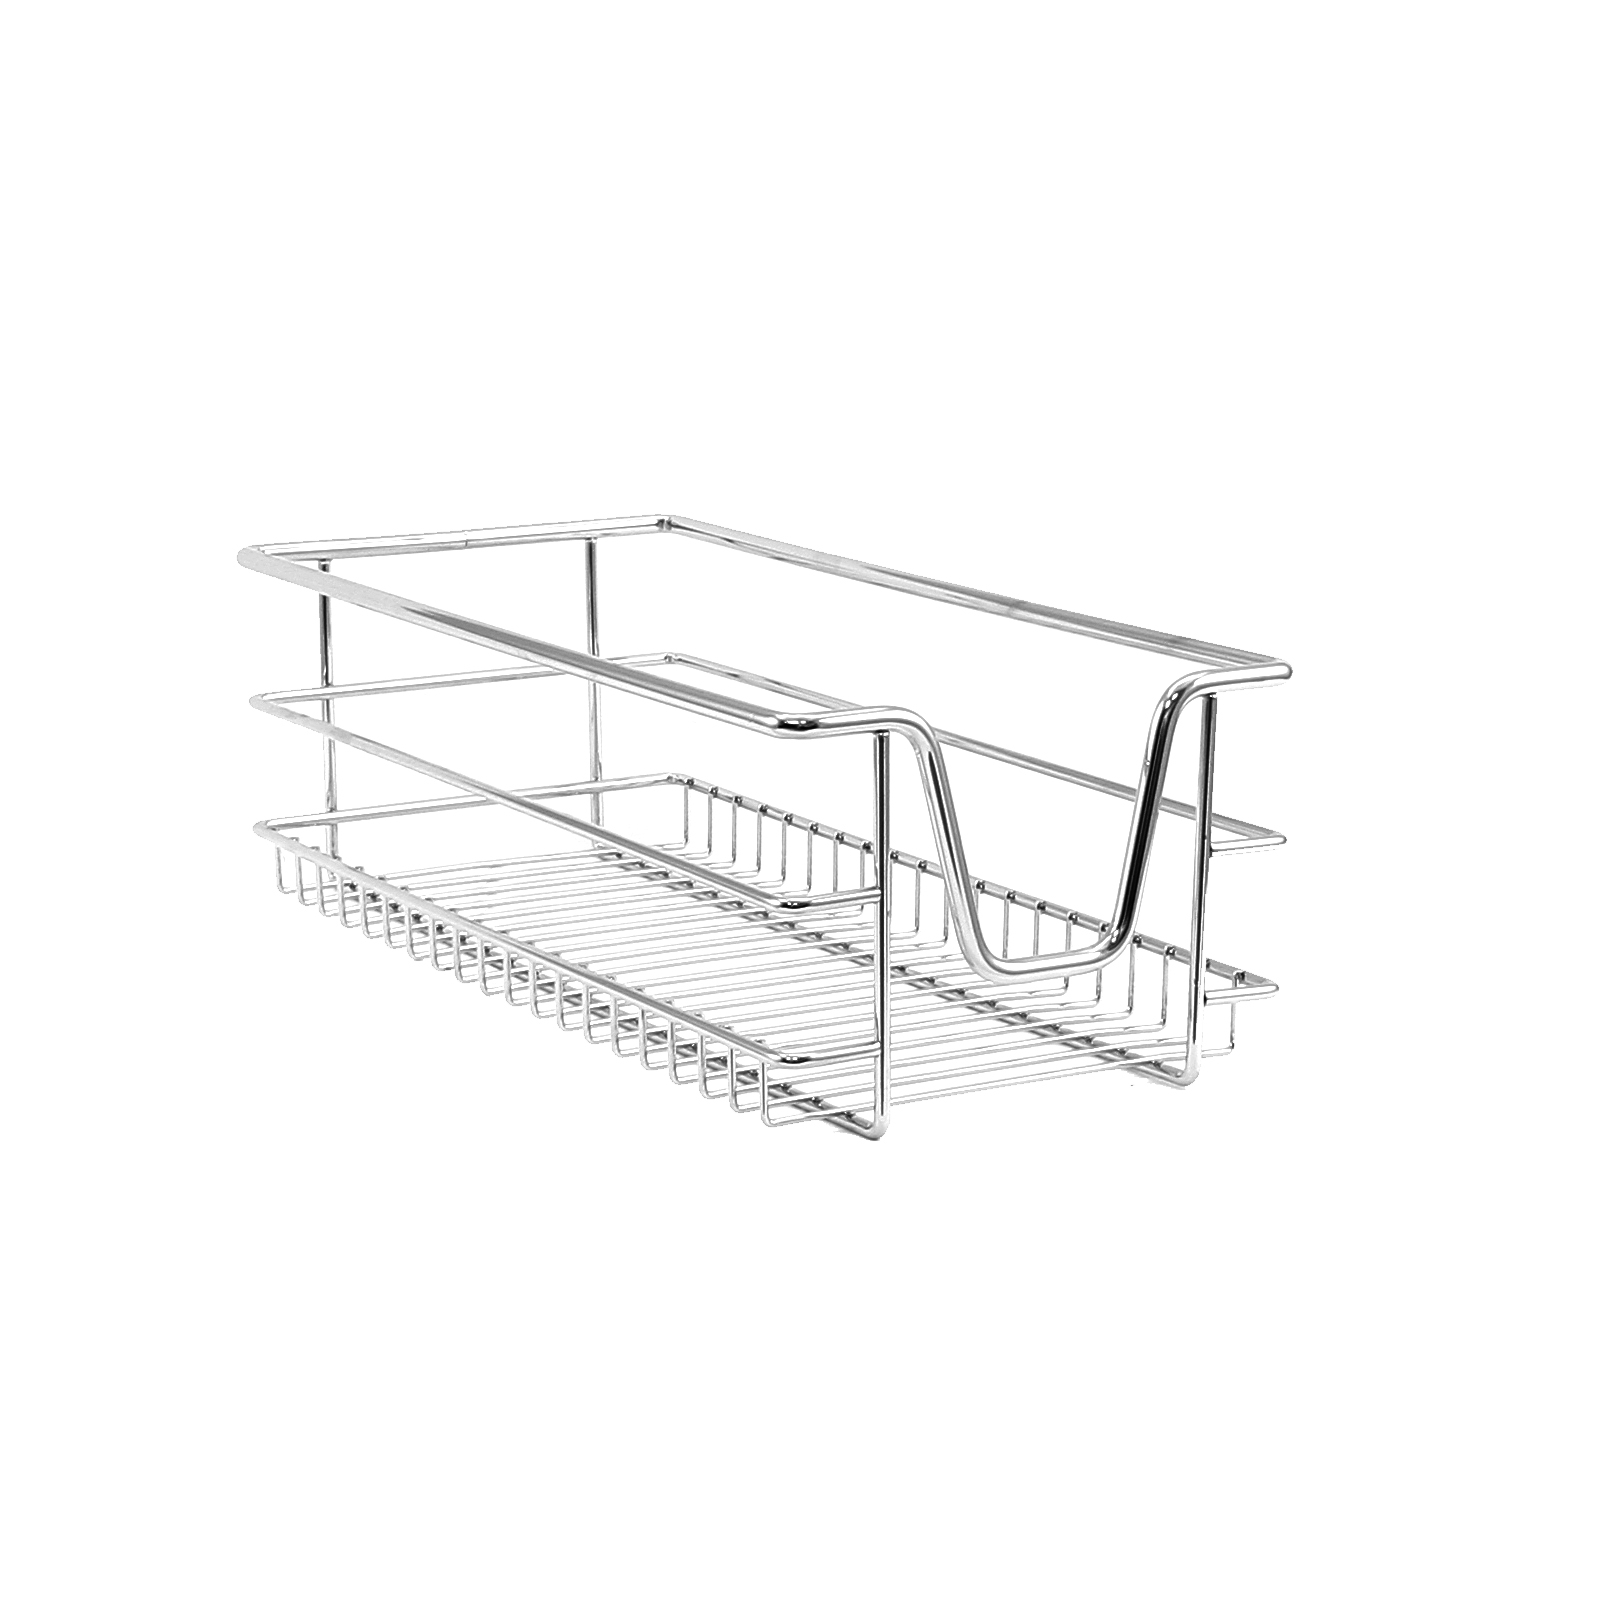 2 Kitchen Wire Baskets Pull Out Storage Drawer Slide Out